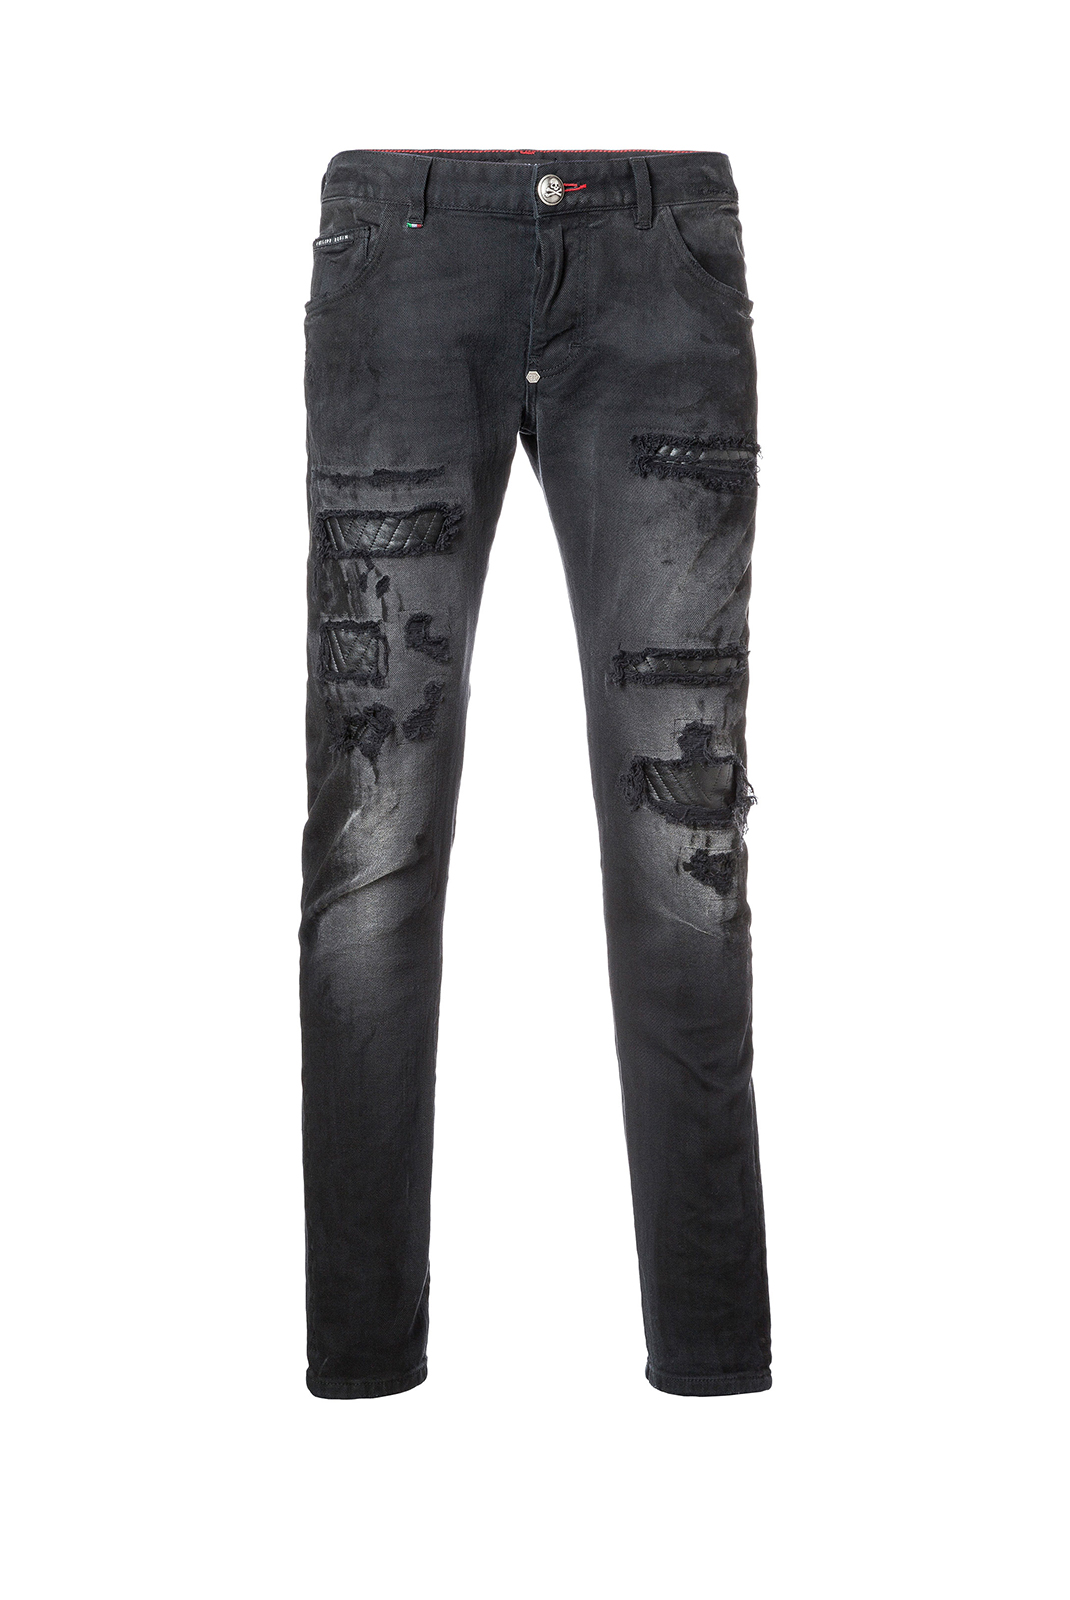 slim / skinny  Philipp plein MDT0419 MOROY 02ON ONI